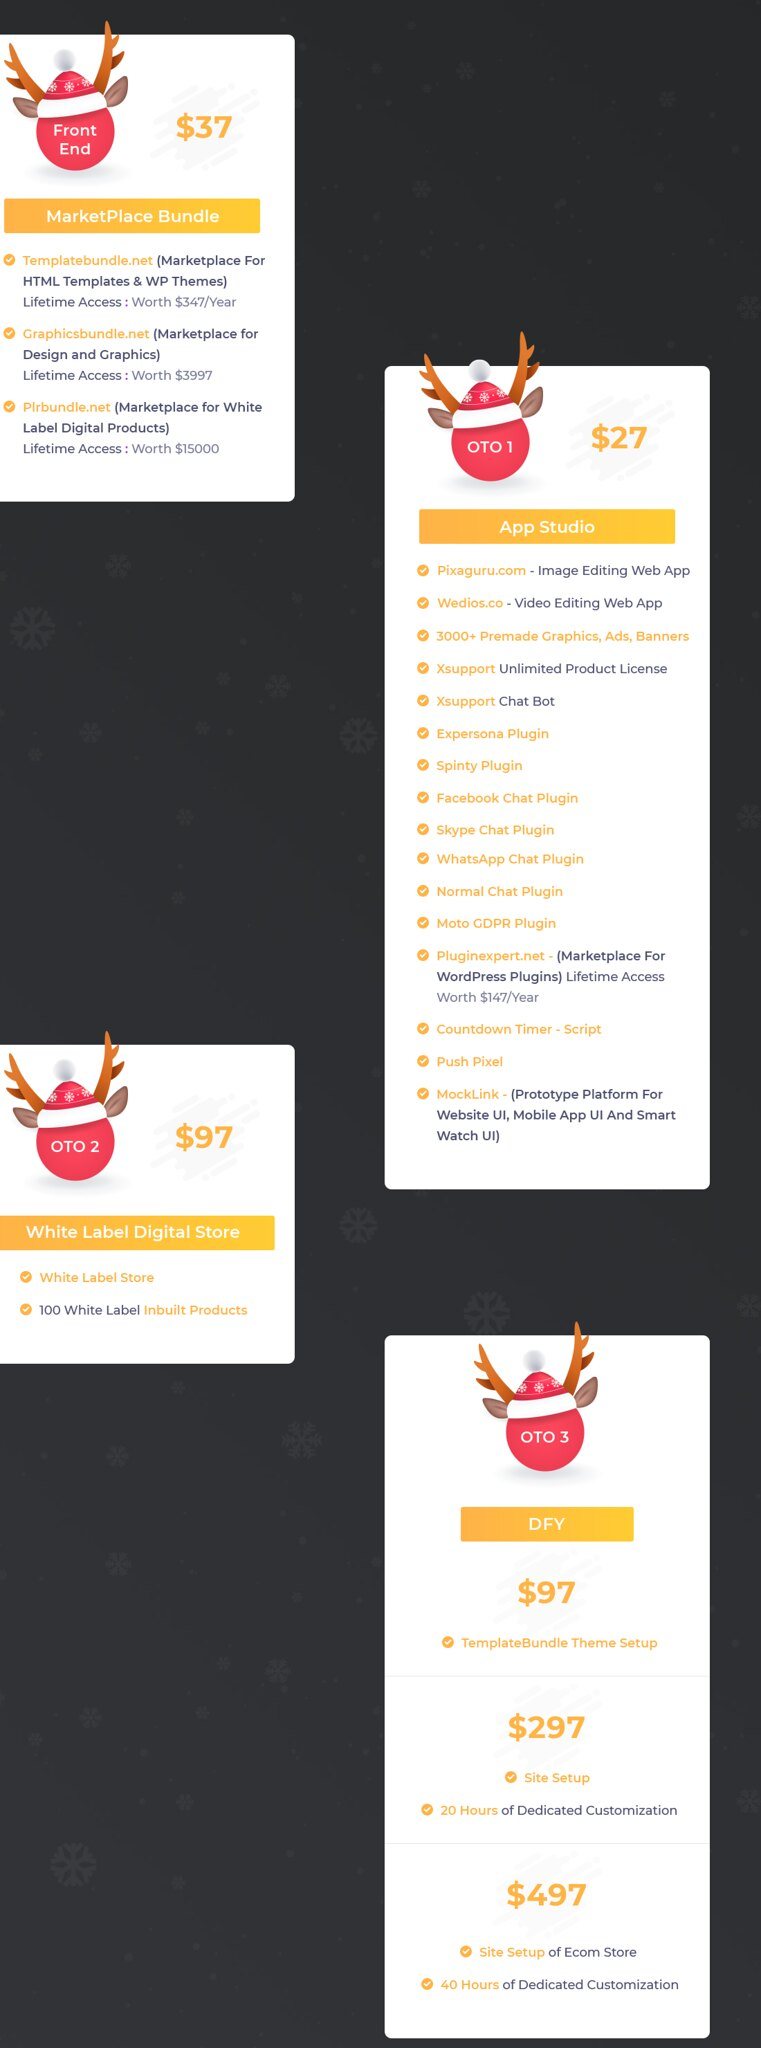 MarketPlace BUNDLE Review - ALL INCLUSIVE Web Marketing Tools 7